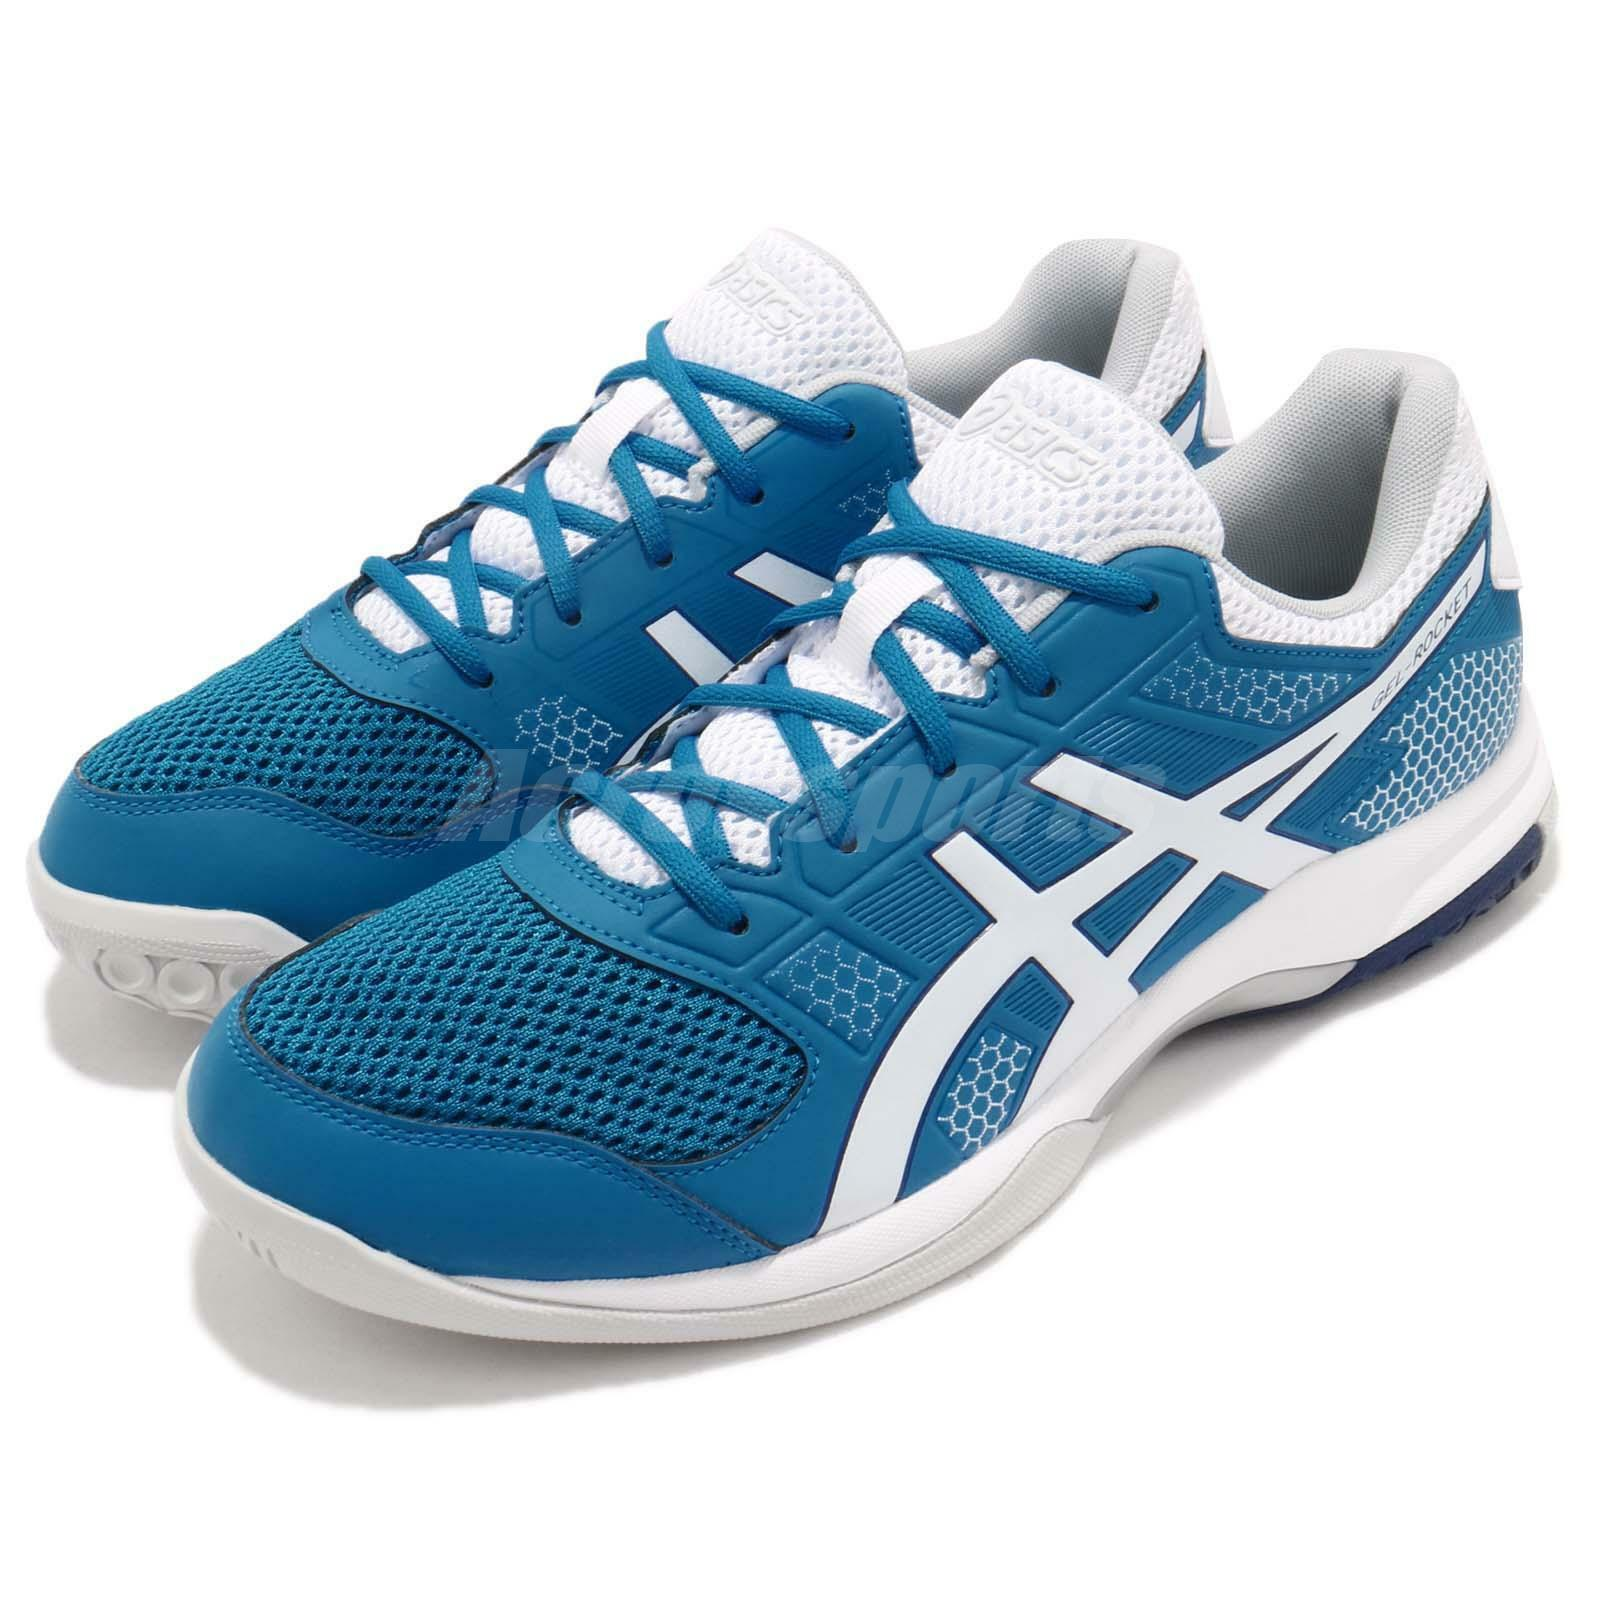 Asics Gel-Rocket 8 bluee White Men Volleyball Badminton shoes Sneakers B706-Y401